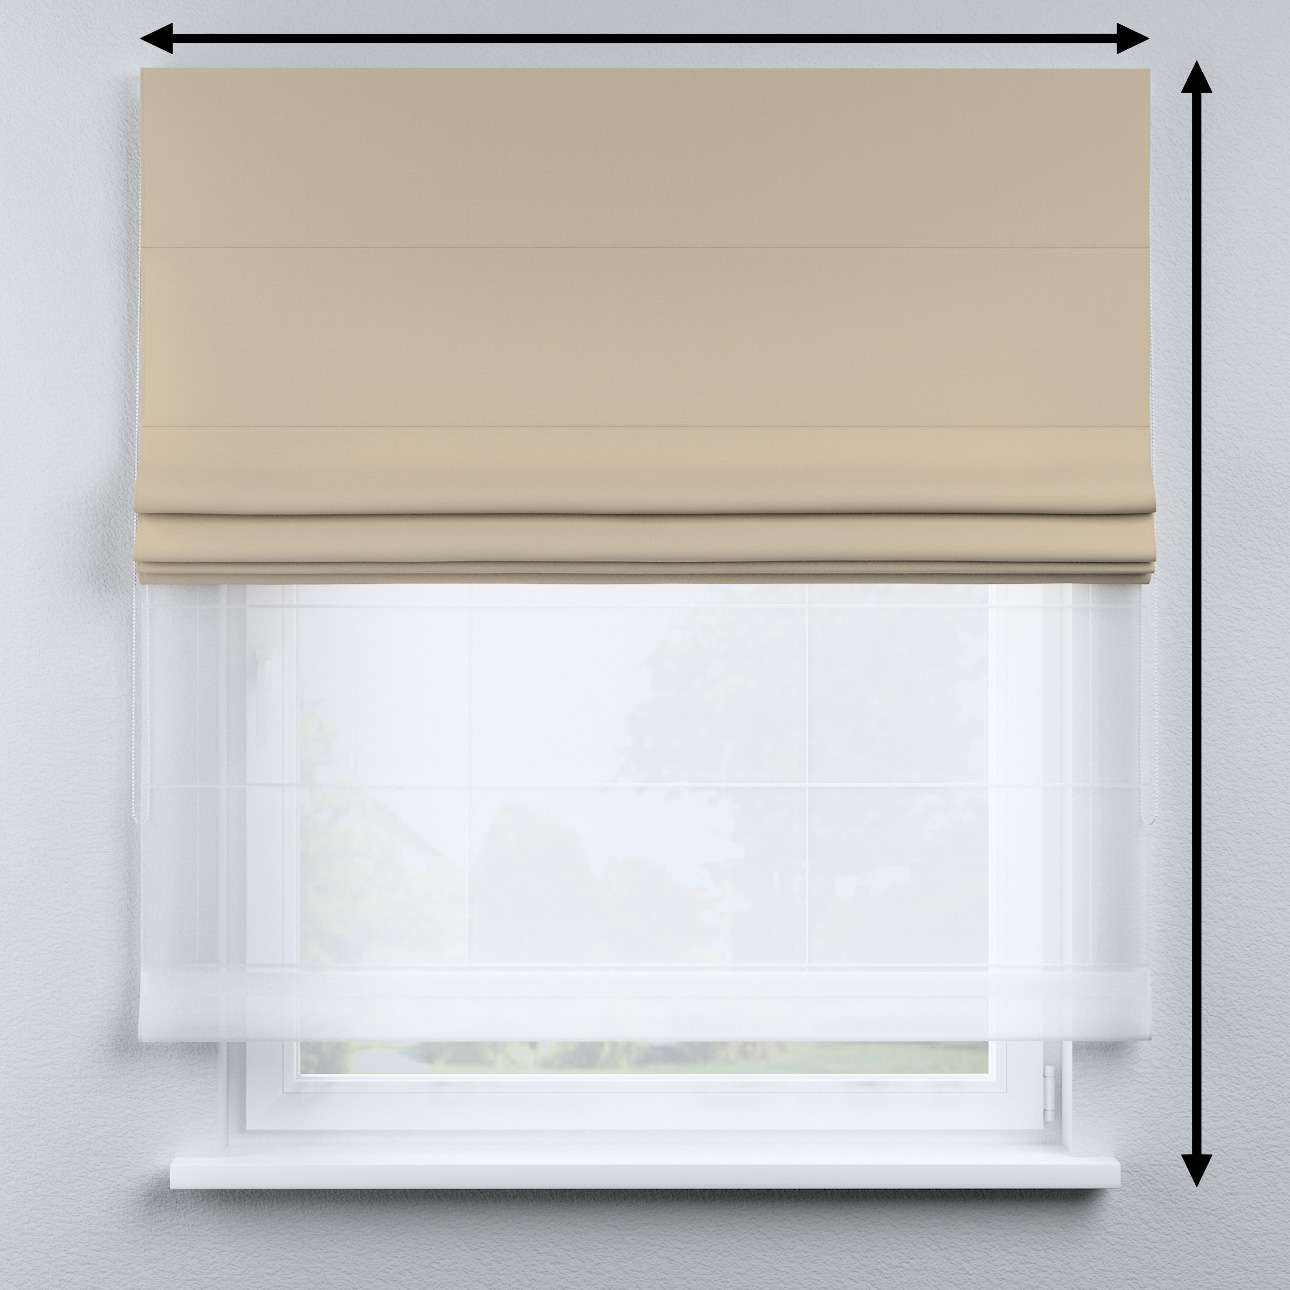 Voile and fabric roman blind (DUO II) in collection Cotton Story, fabric: 702-01